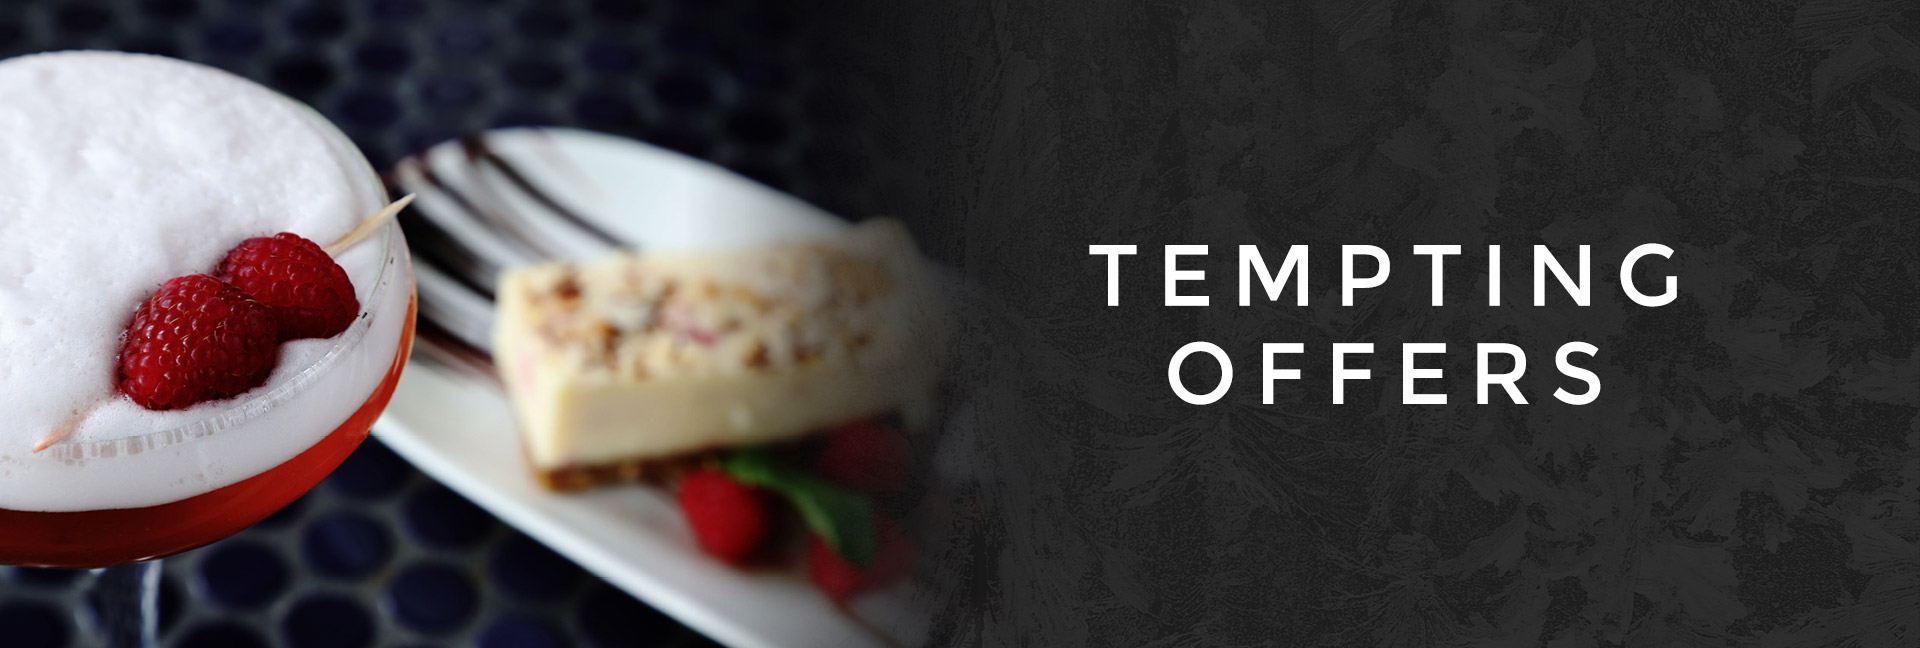 Temping offers at All Bar One Cambridge